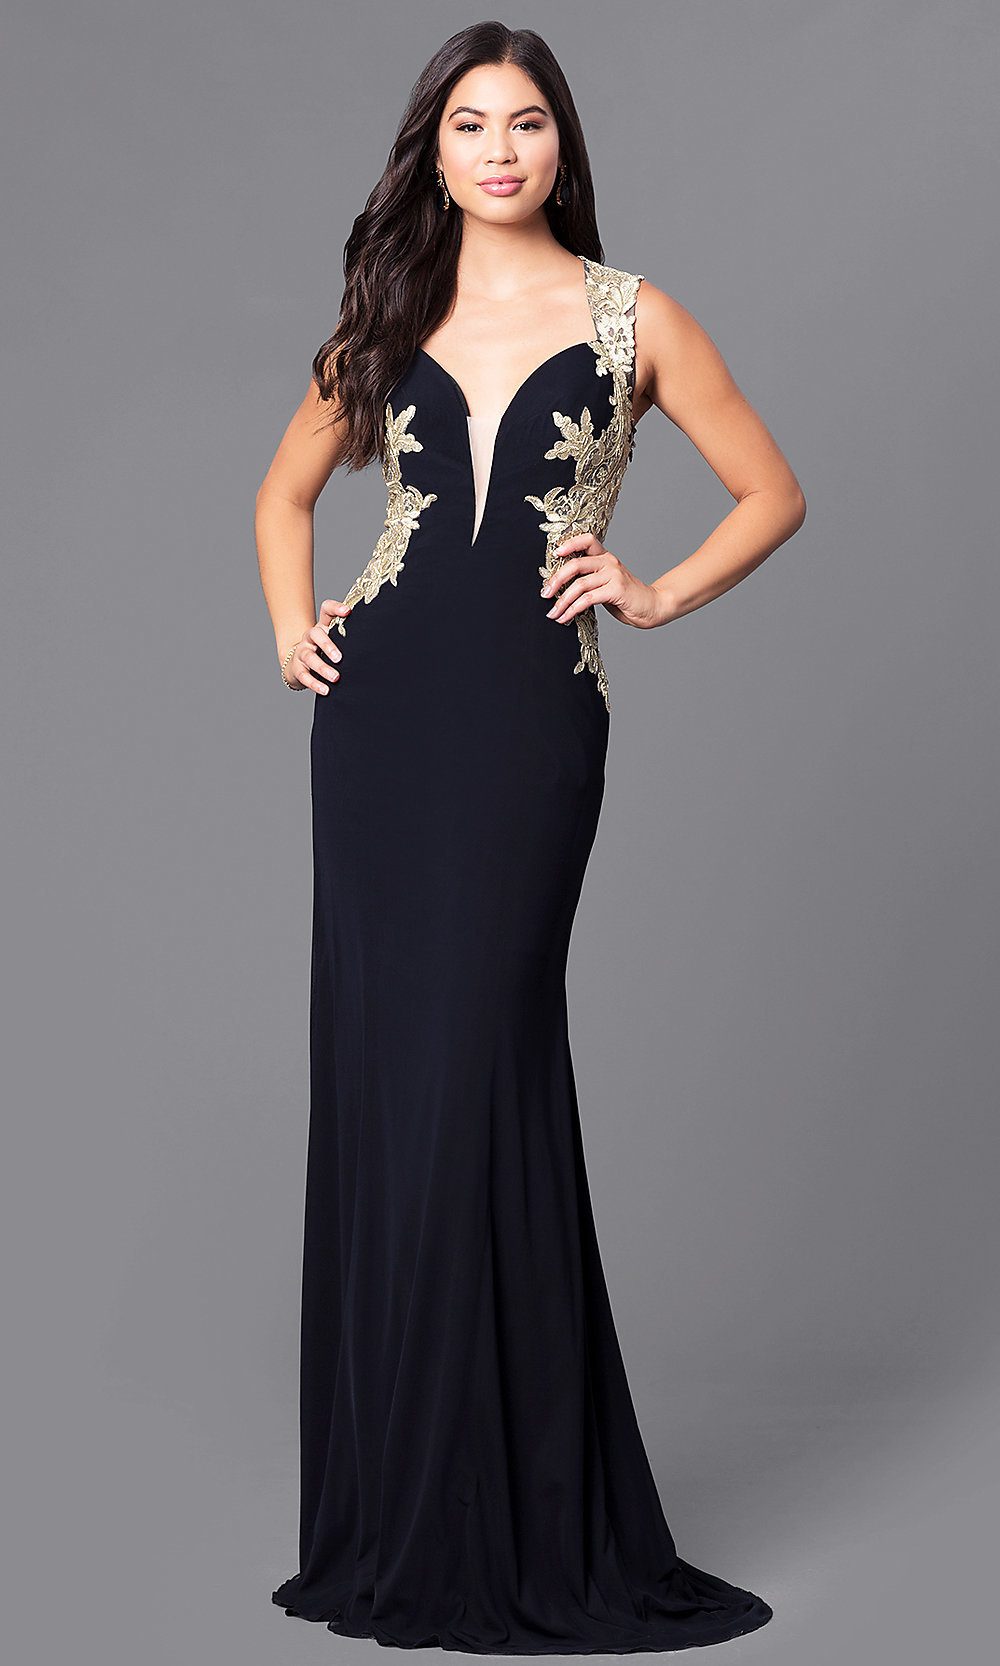 Black Long Designer Formal Prom Dress - PromGirl